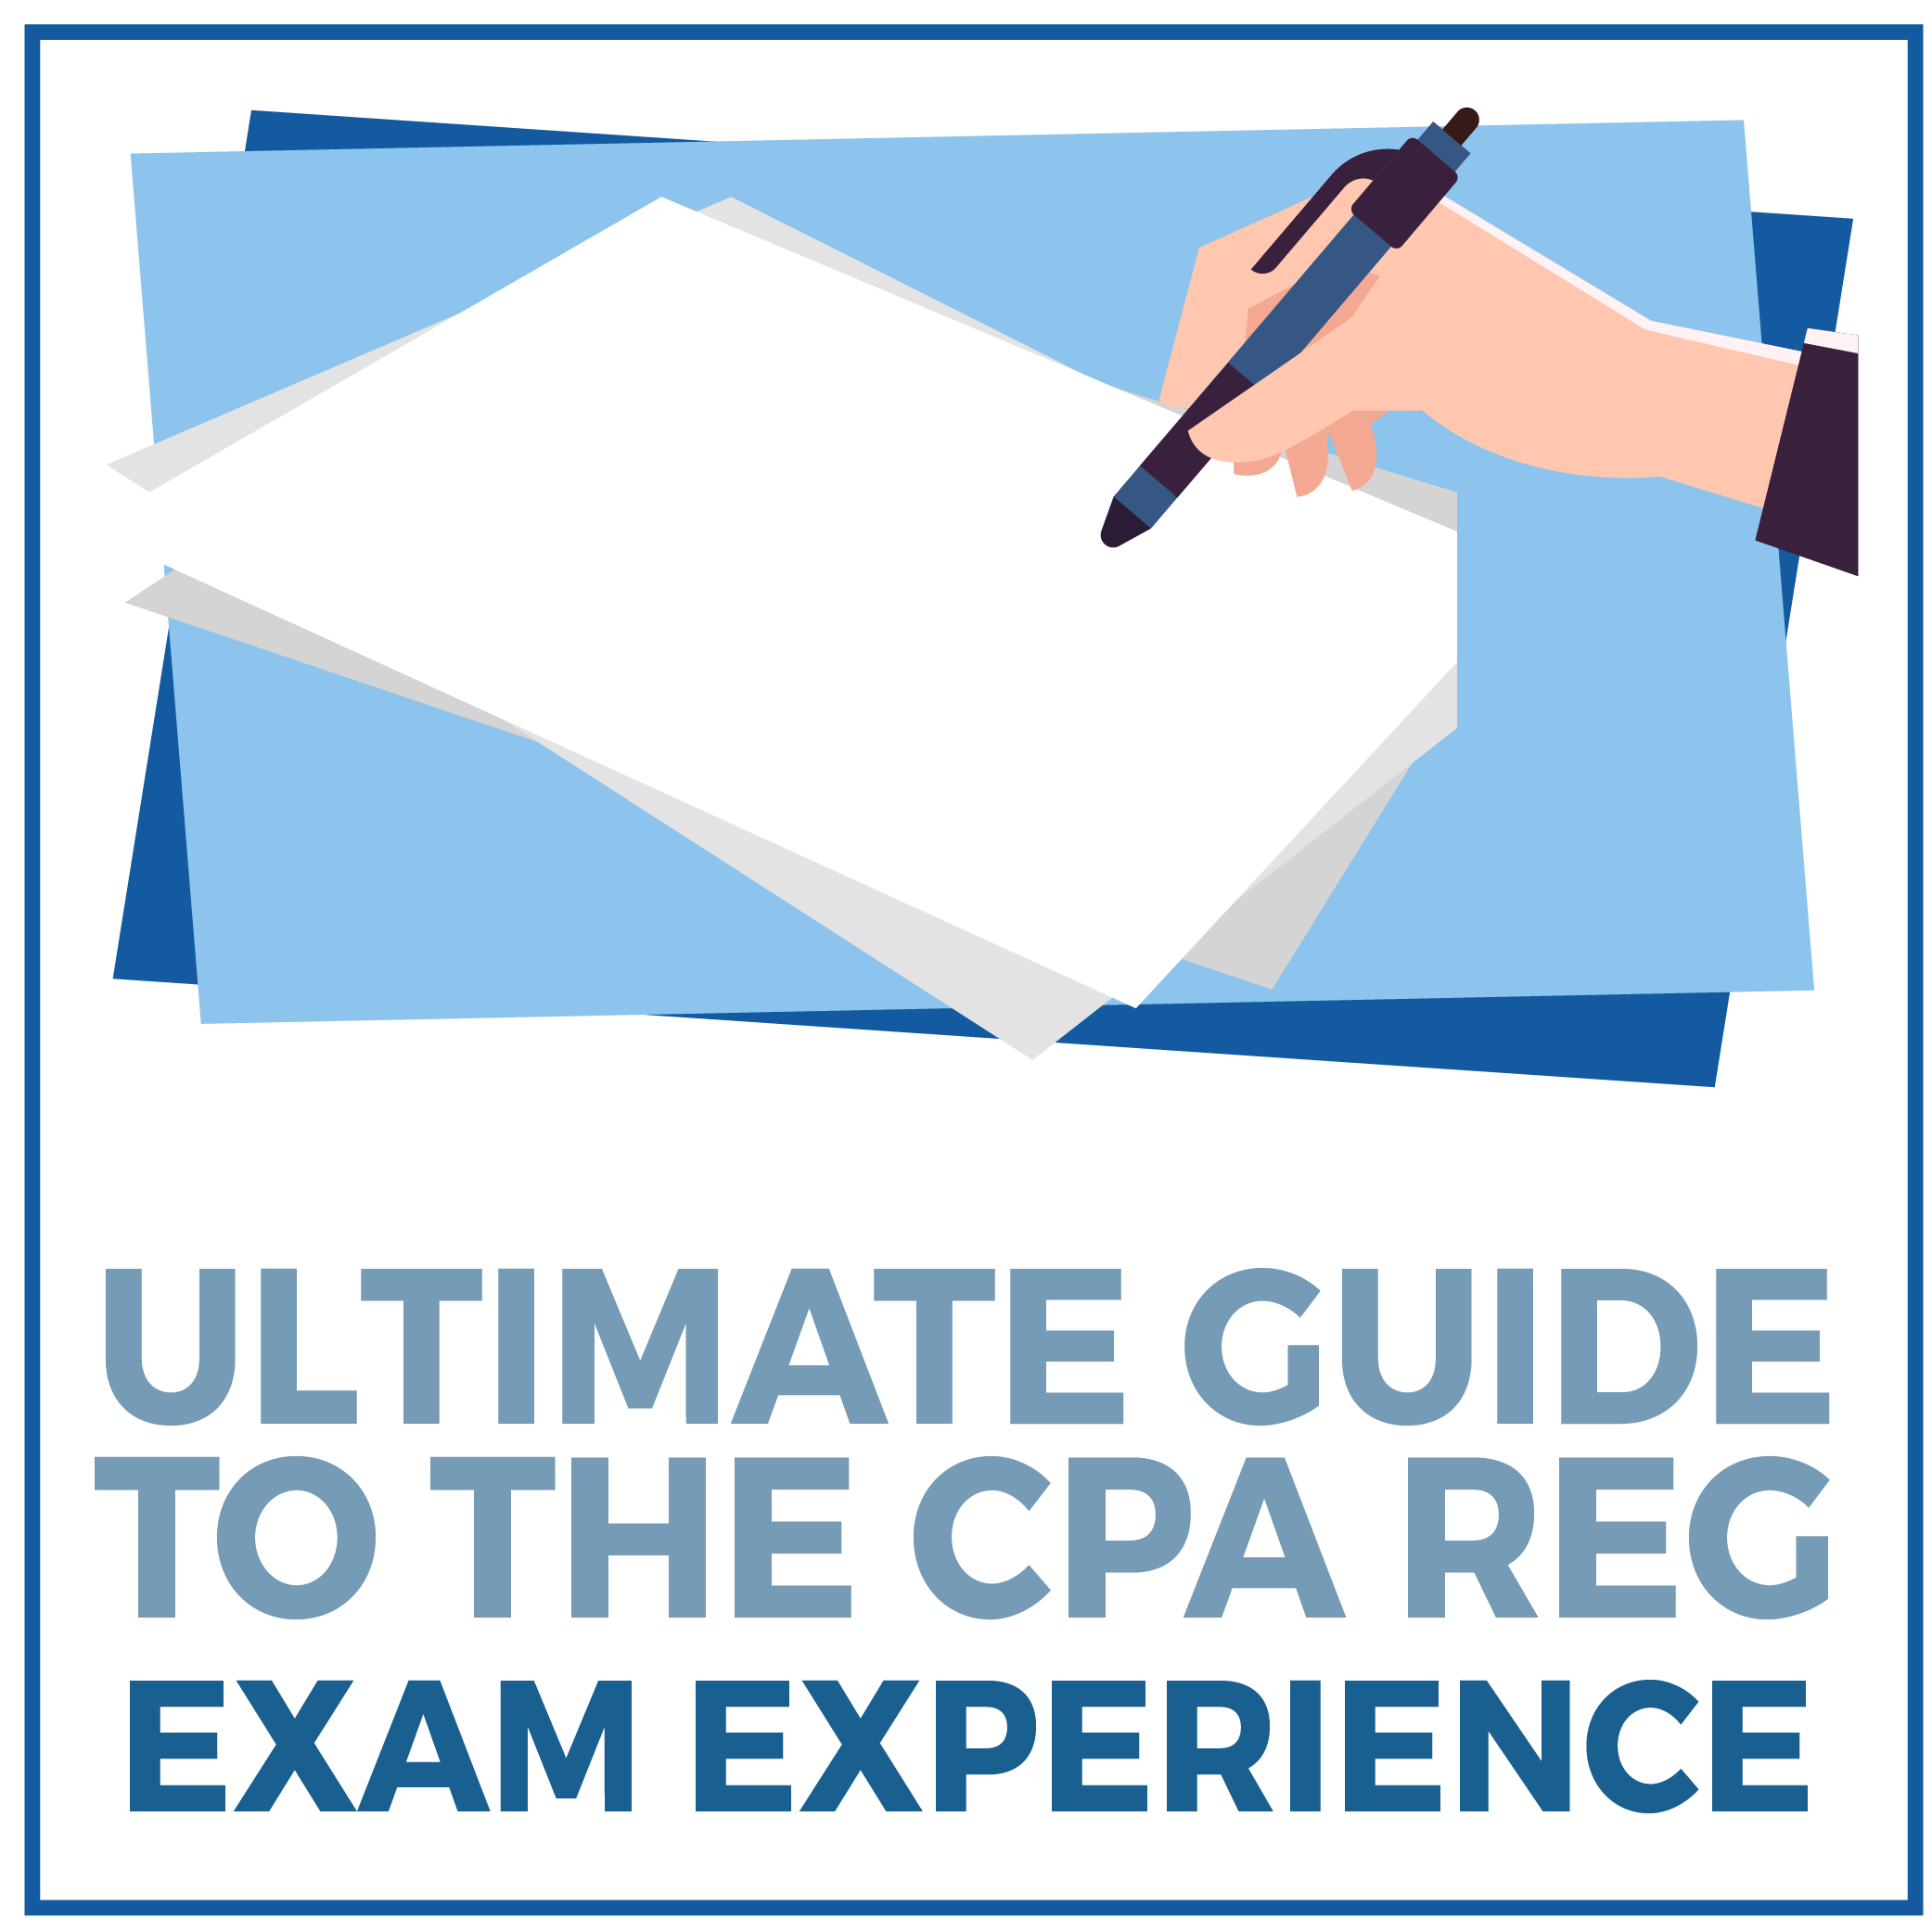 Ultimate Guide to the CPA REG Exam Experience